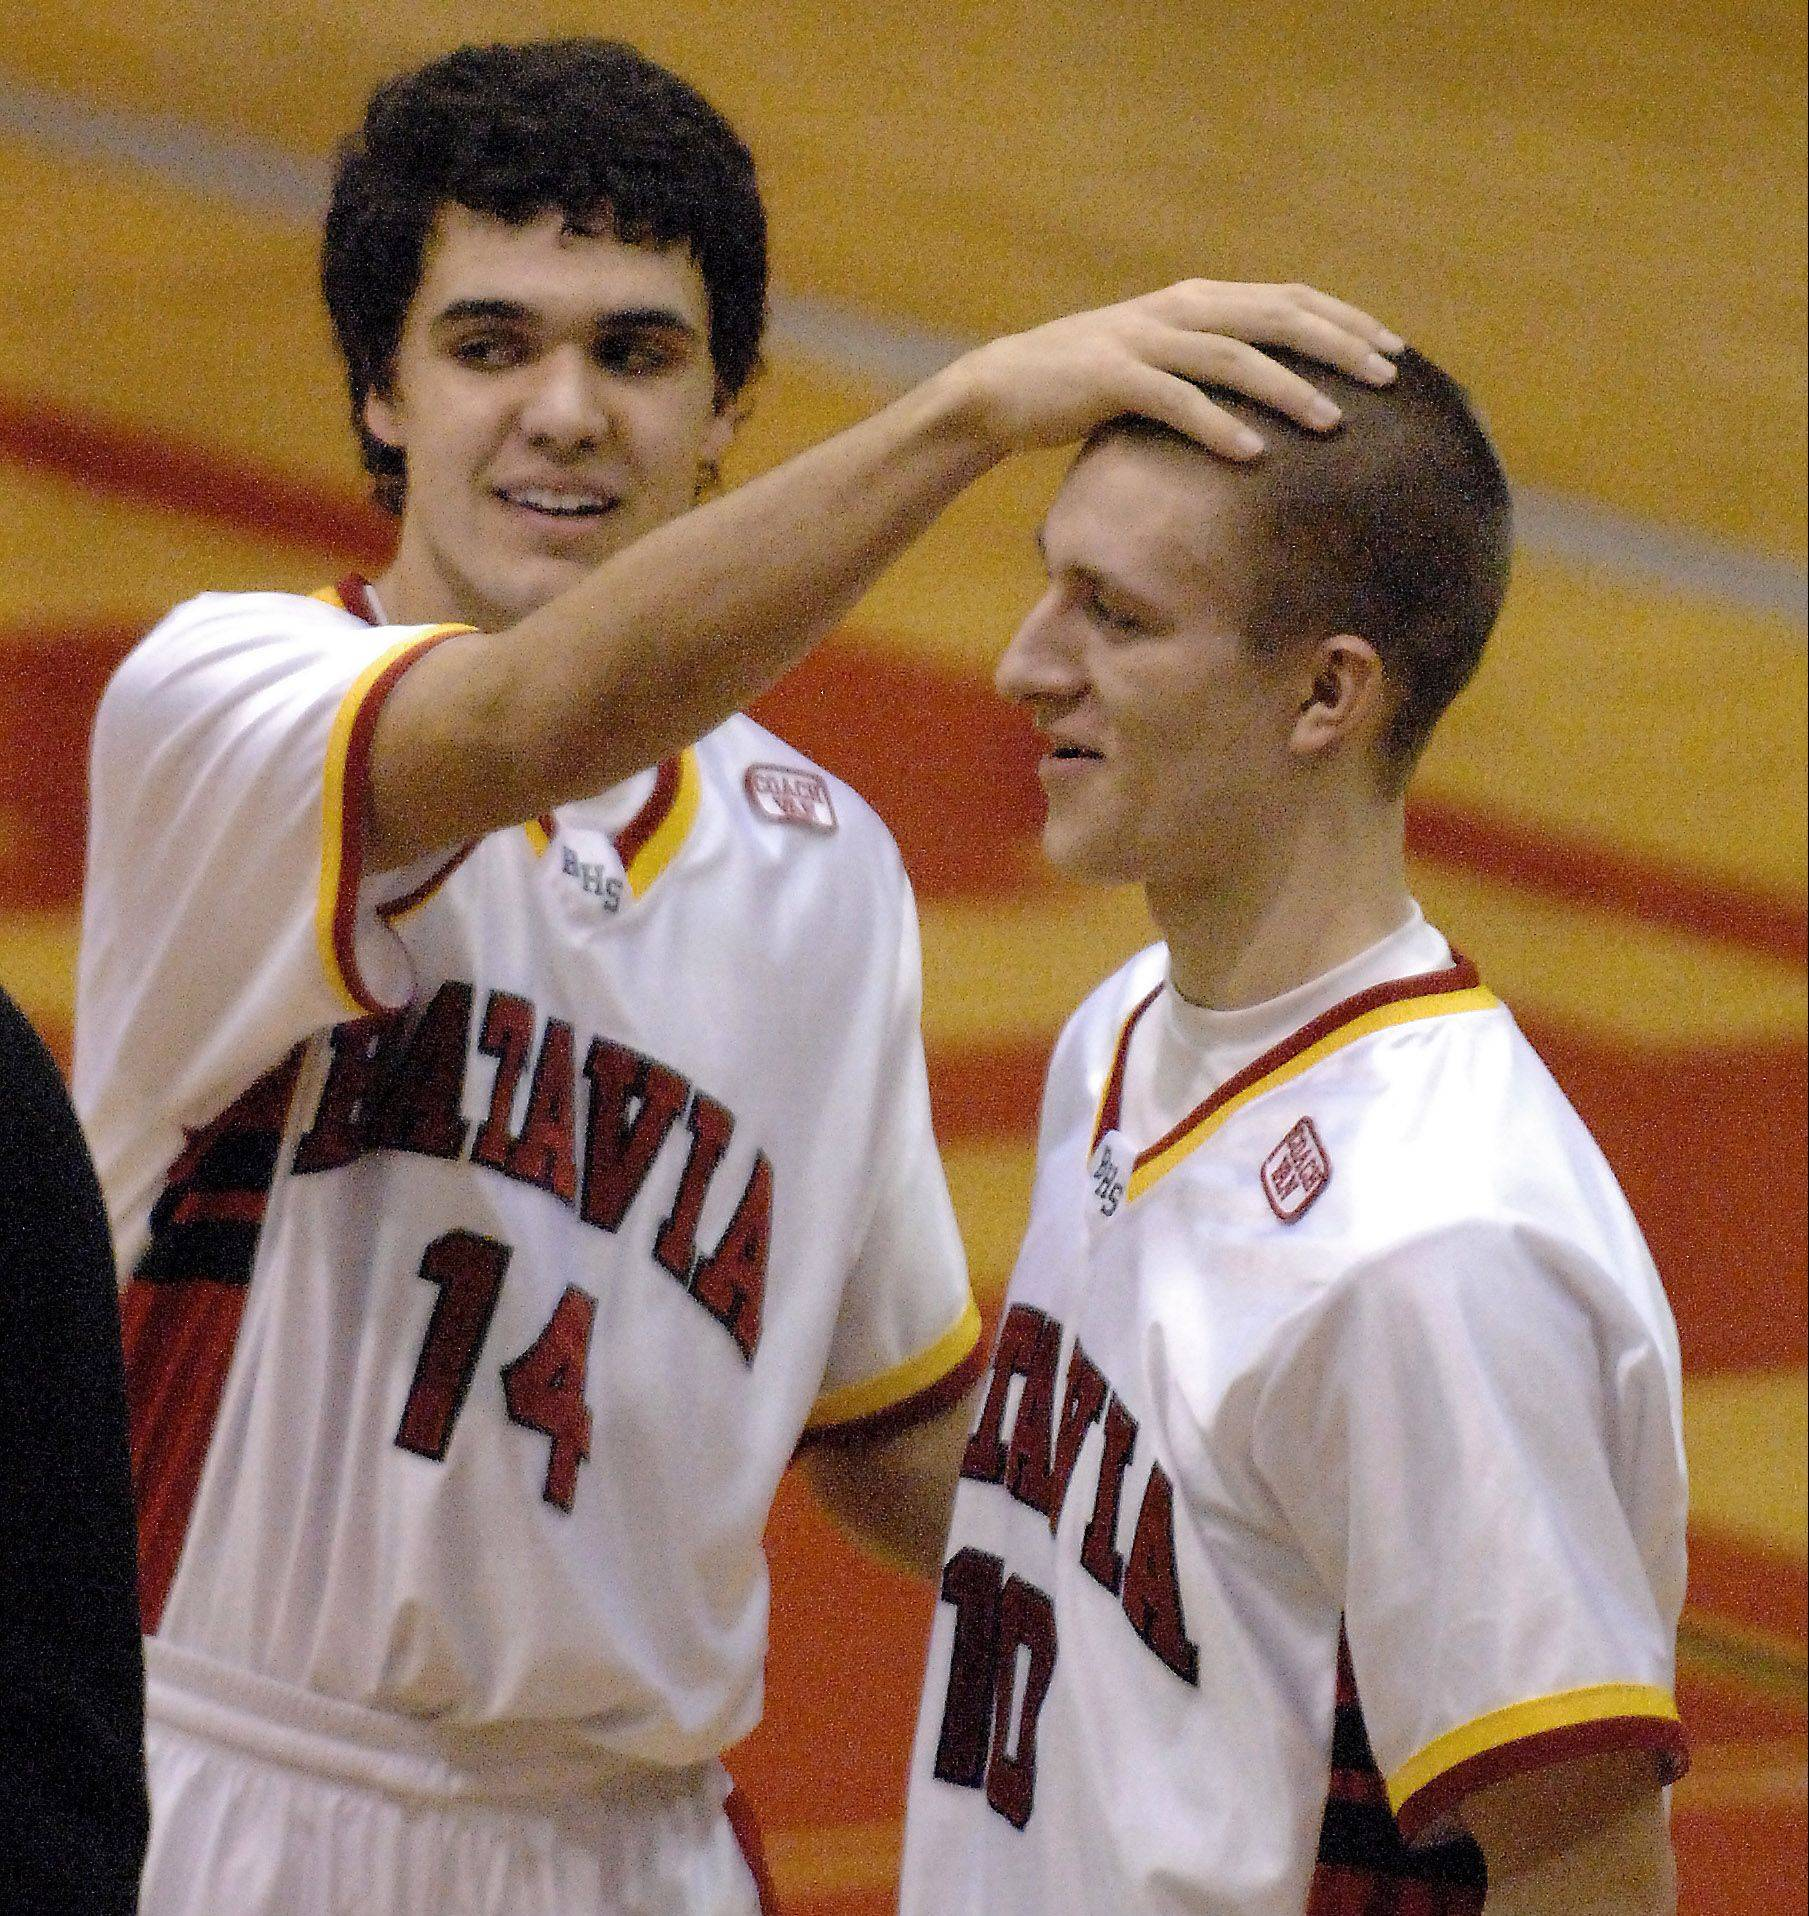 Above: Batavia's Mike Rueffer (10) gets a congratulatory pat on the head from teammate Micah Coffey after scoring the winning basket with 7 seconds left against Elgin Tuesday at Batavia. Below: Rueffer knocks a away a last second alley-oop attempt by Elgin to seal the 55-54 win.